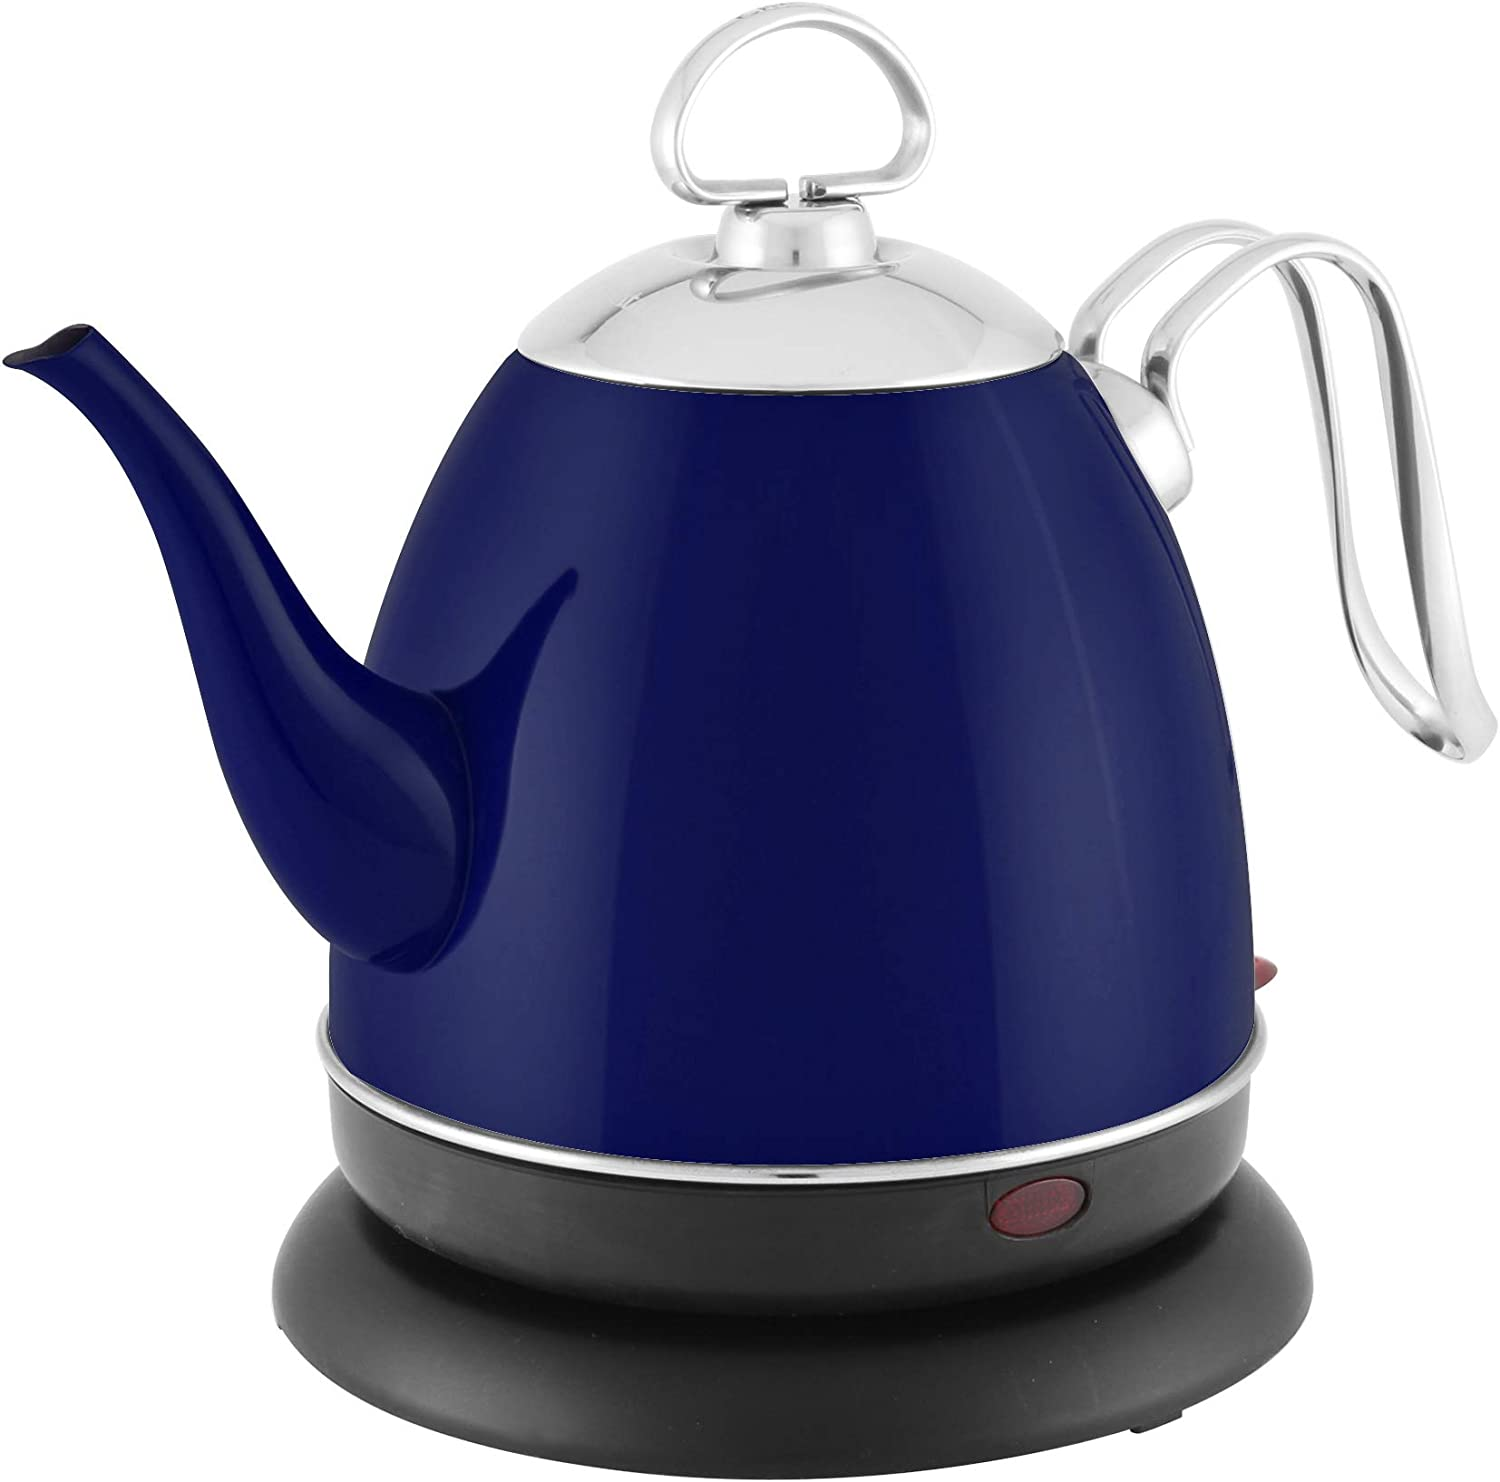 Chantal ELSL37-03M BL Mia eKettle Electric Water Kettle